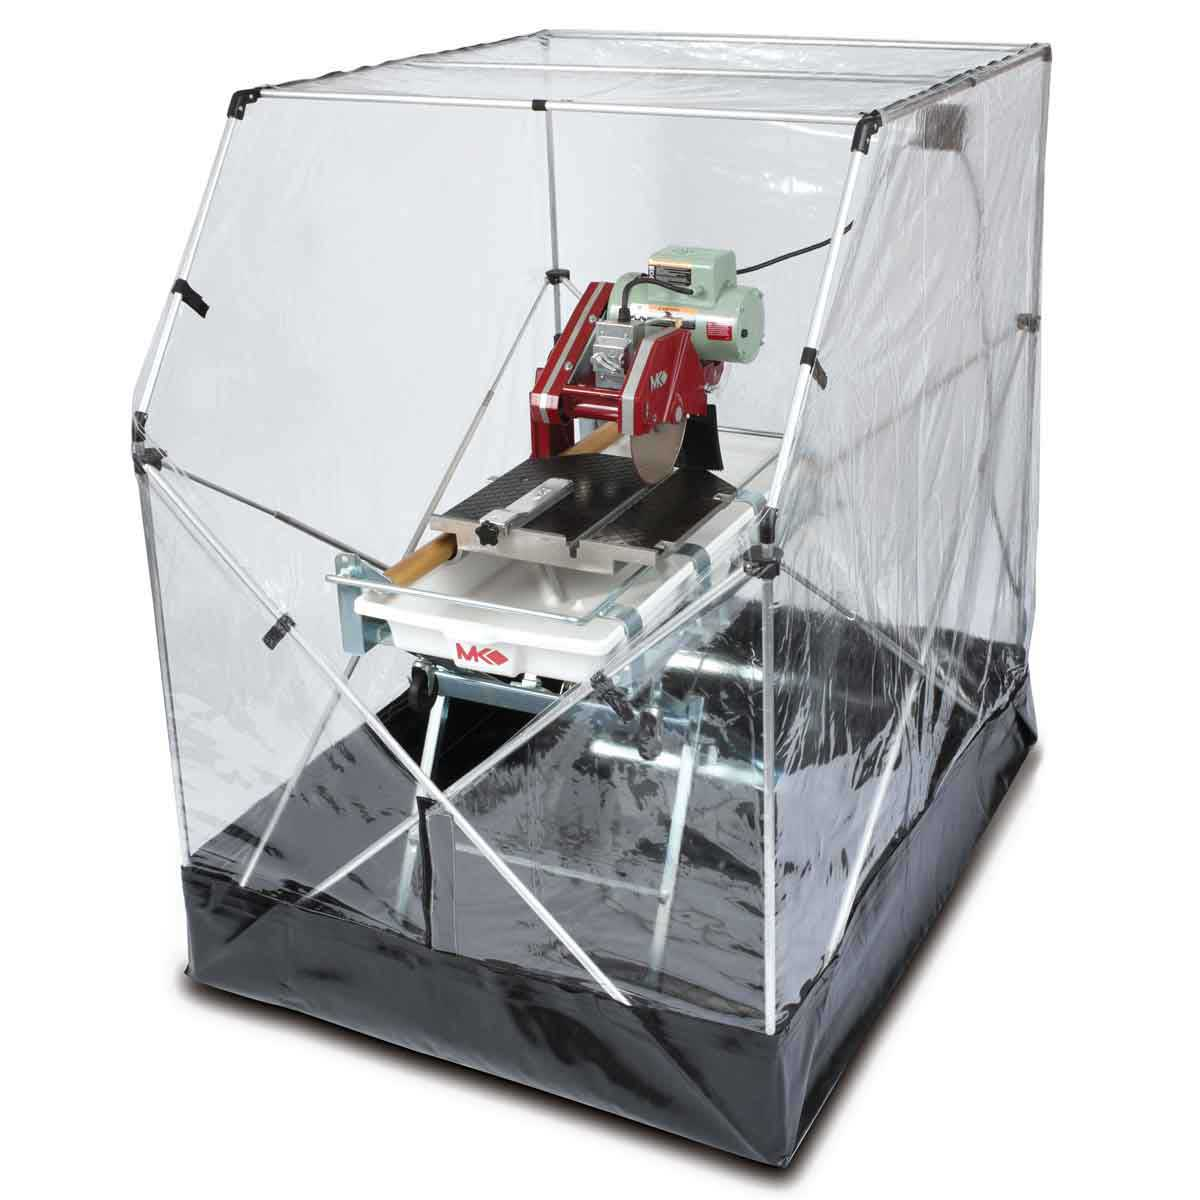 ... Barwalt saw shack with 10 inch wet tile saw ...  sc 1 st  Contractors Direct & Barwalt Saw Shack (4 x 4 x 5 ft) 70832. Contractors Direct